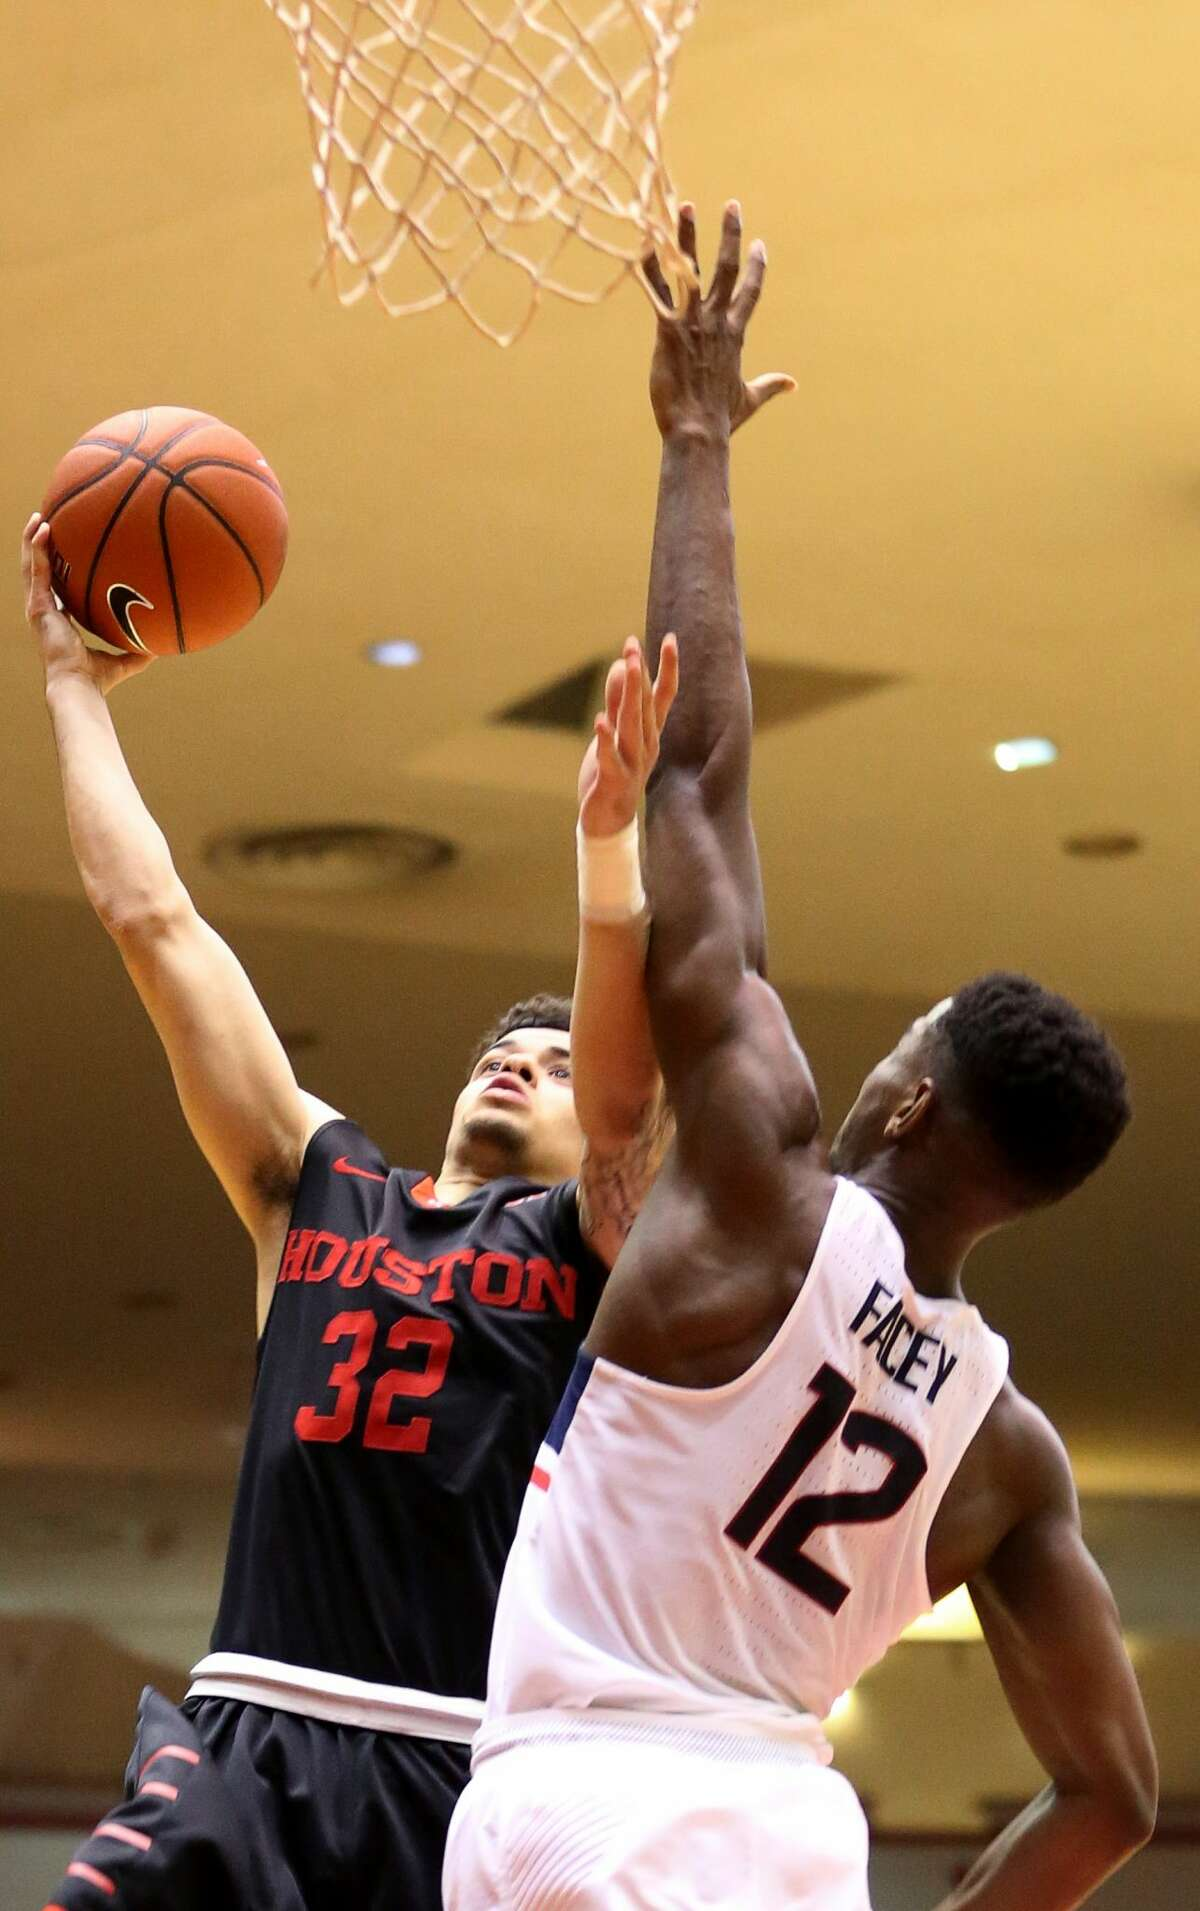 Houston Cougars guard Rob Gray (32) goes for the hoop while Connecticut Huskies forward Kentan Facey (12) is trying to block him during the second half of the game Wednesday, Feb. 22, 2017, in Houston. ( Yi-Chin Lee / Houston Chronicle )